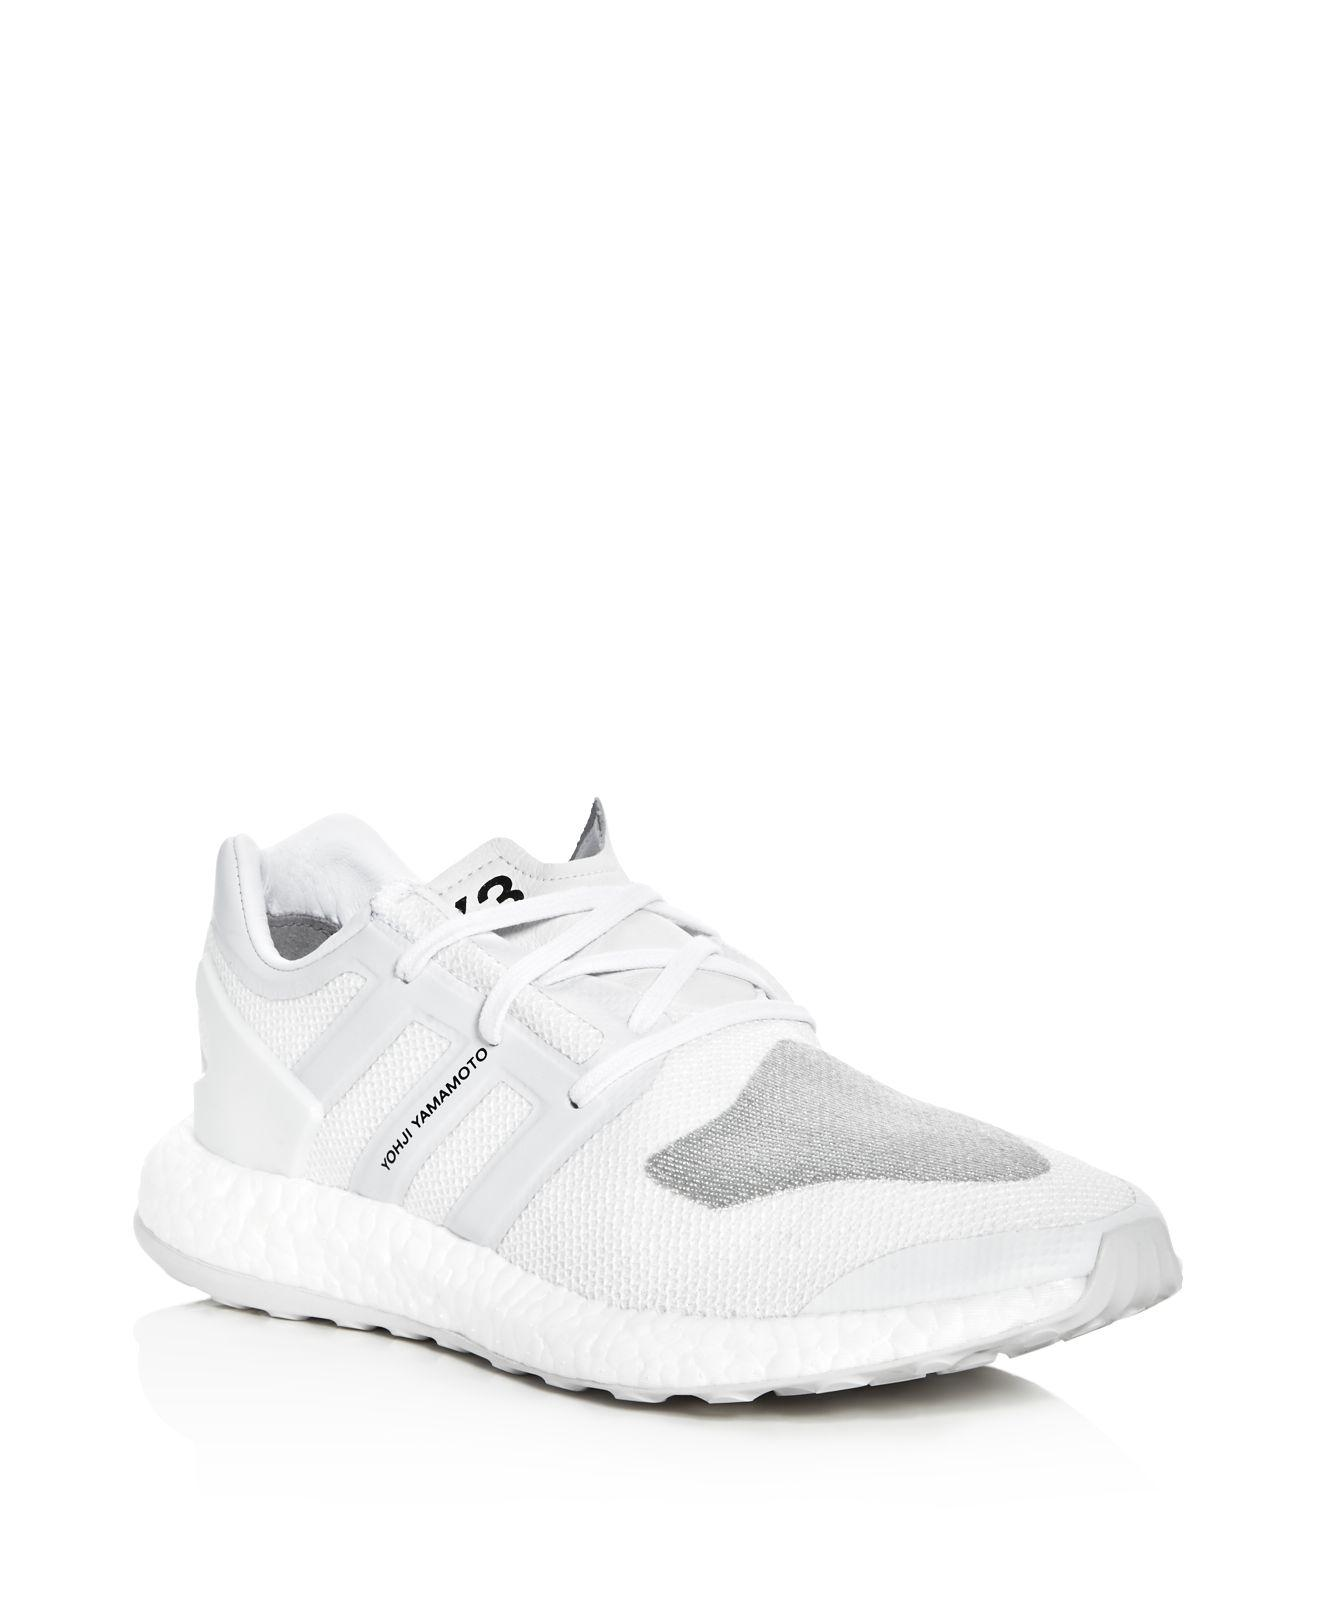 c325970f5a714 Lyst - Y-3 Men s Pureboost Lace Up Sneakers in White for Men